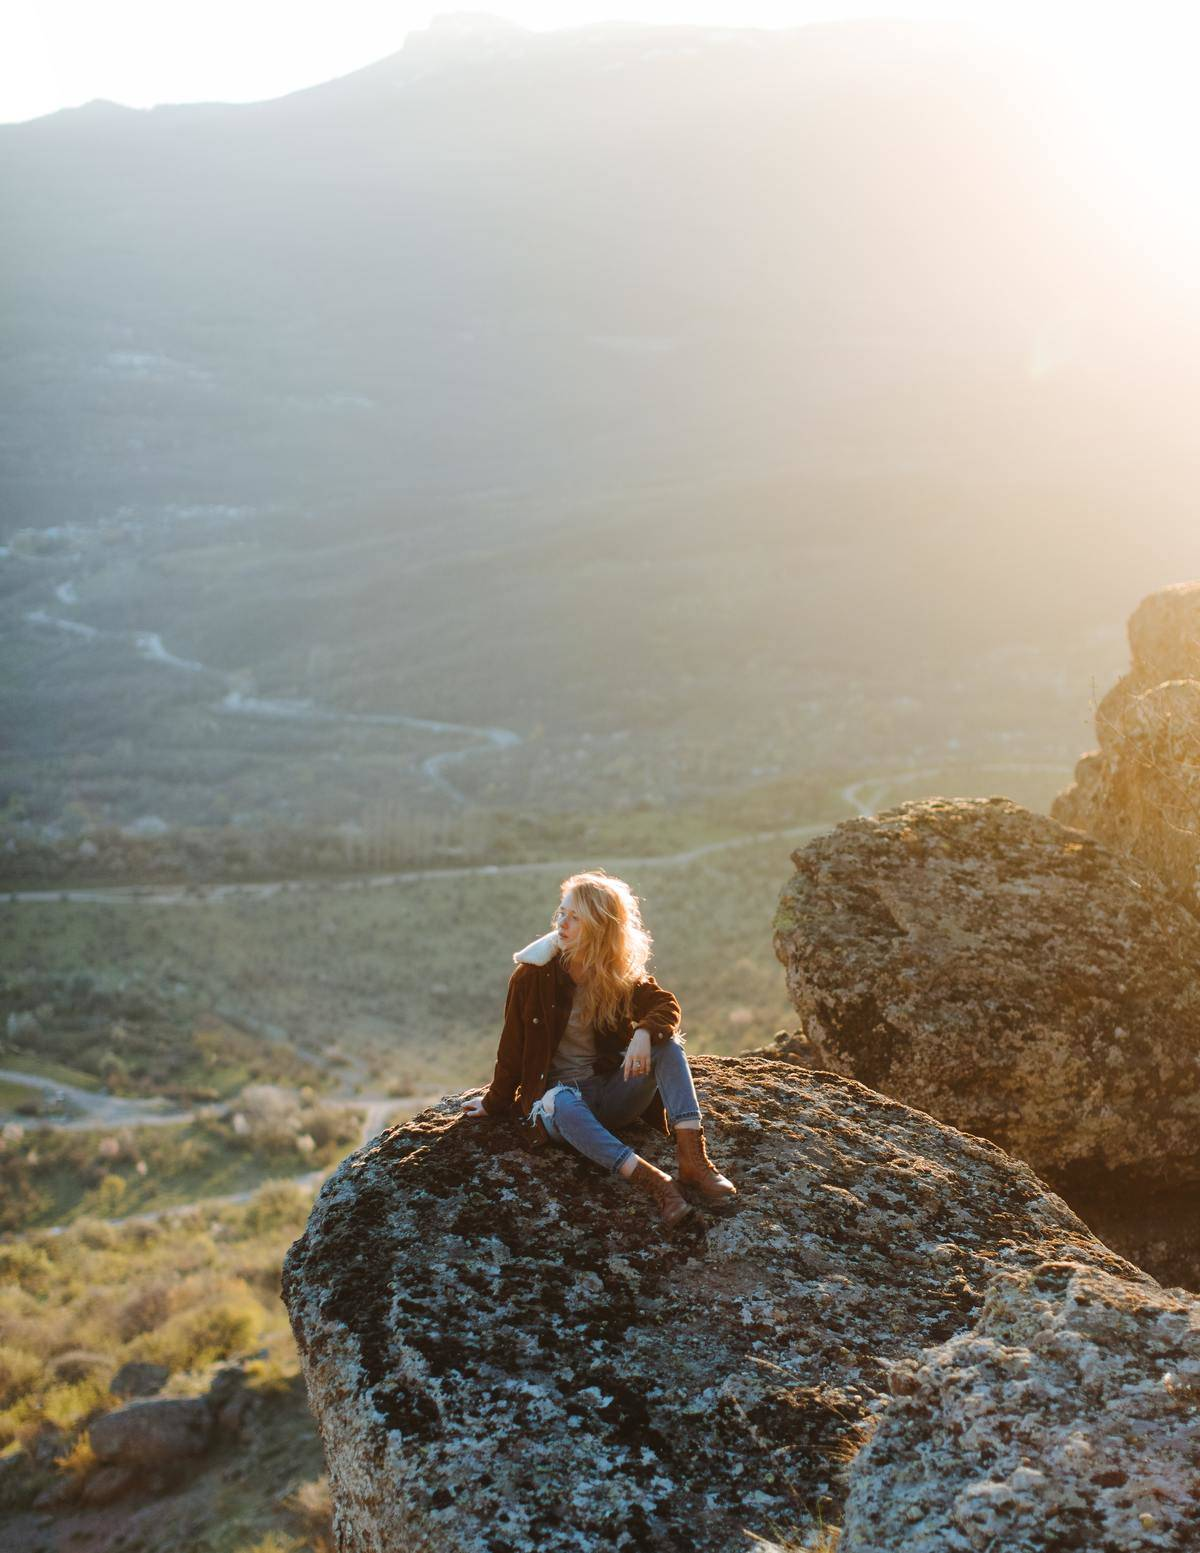 woman sitting on the side of a hill looking out over some nature scenery